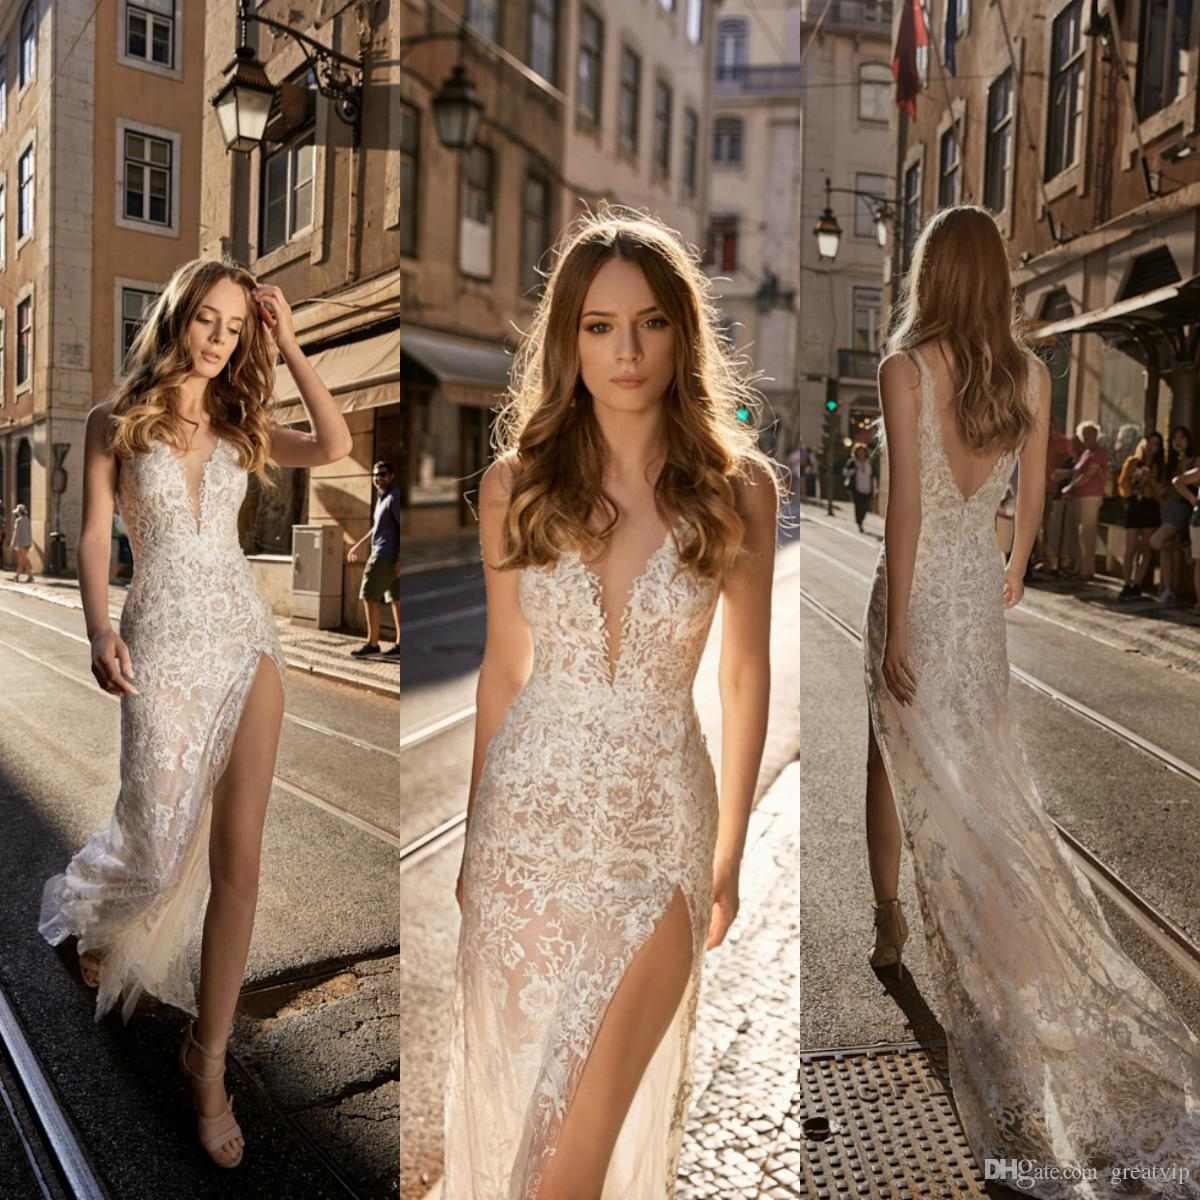 Berta 2019 Mermaid Wedding Dresses Lace V Neck Split Backless With Tulle Overskirts Sweep Train Bridal Gowns robe de mariée